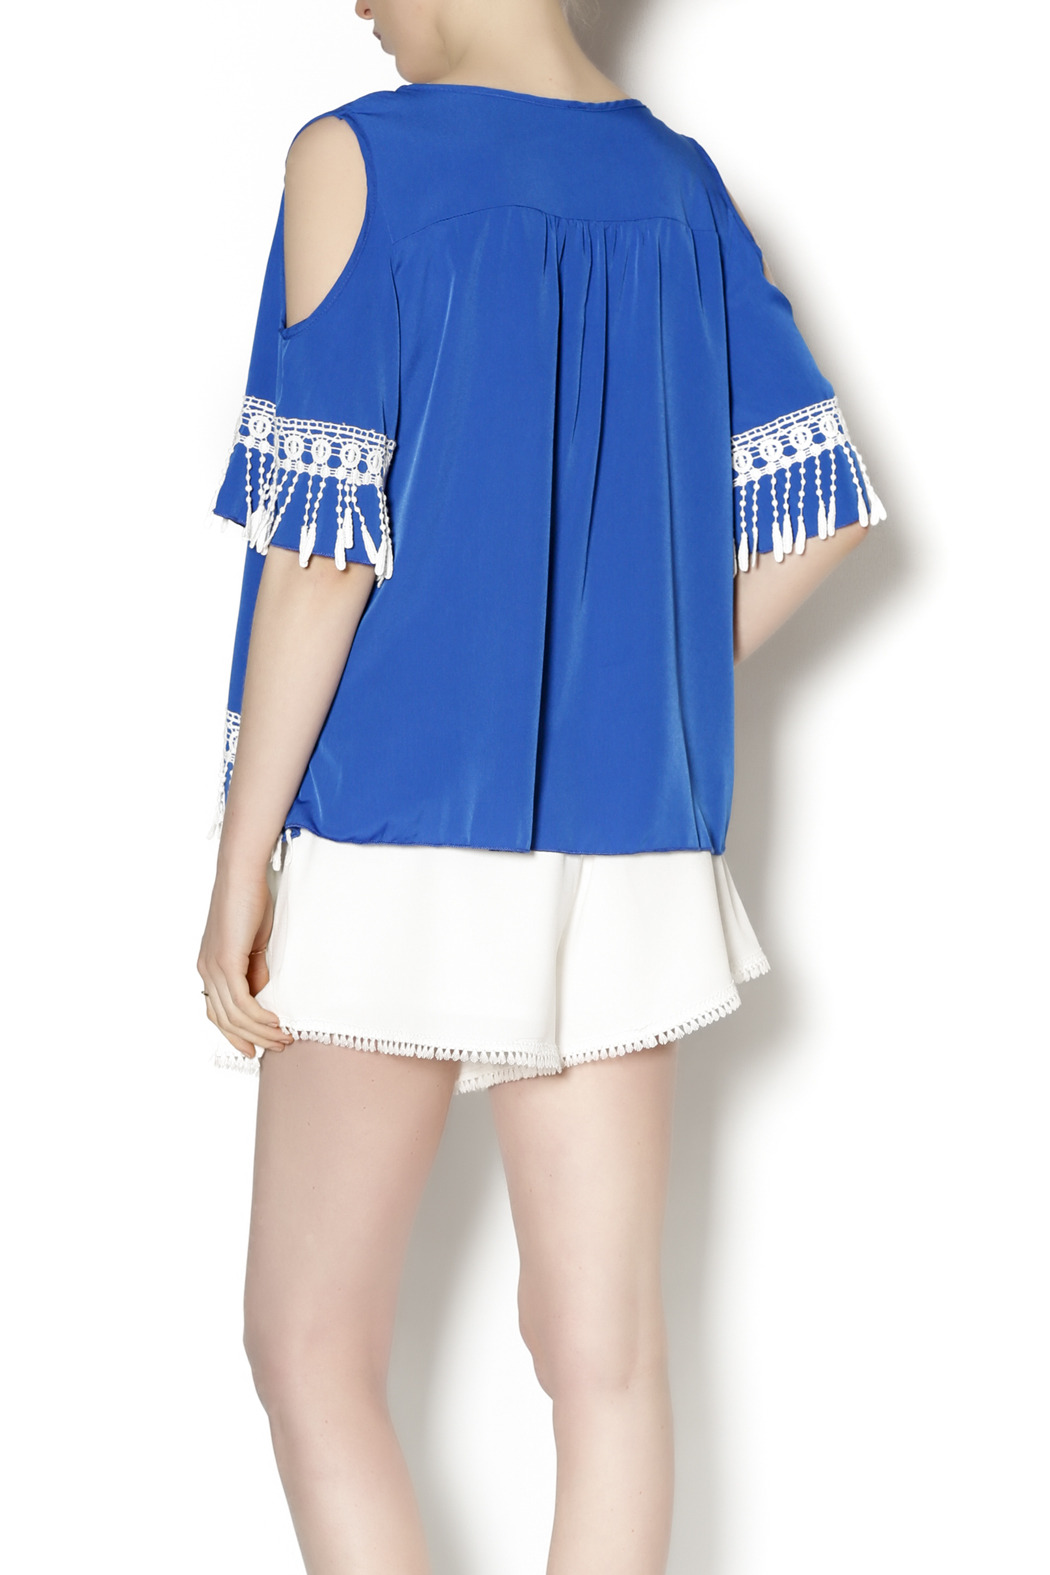 Abby & Taylor Blue Crochet Trim Tunic - Back Cropped Image